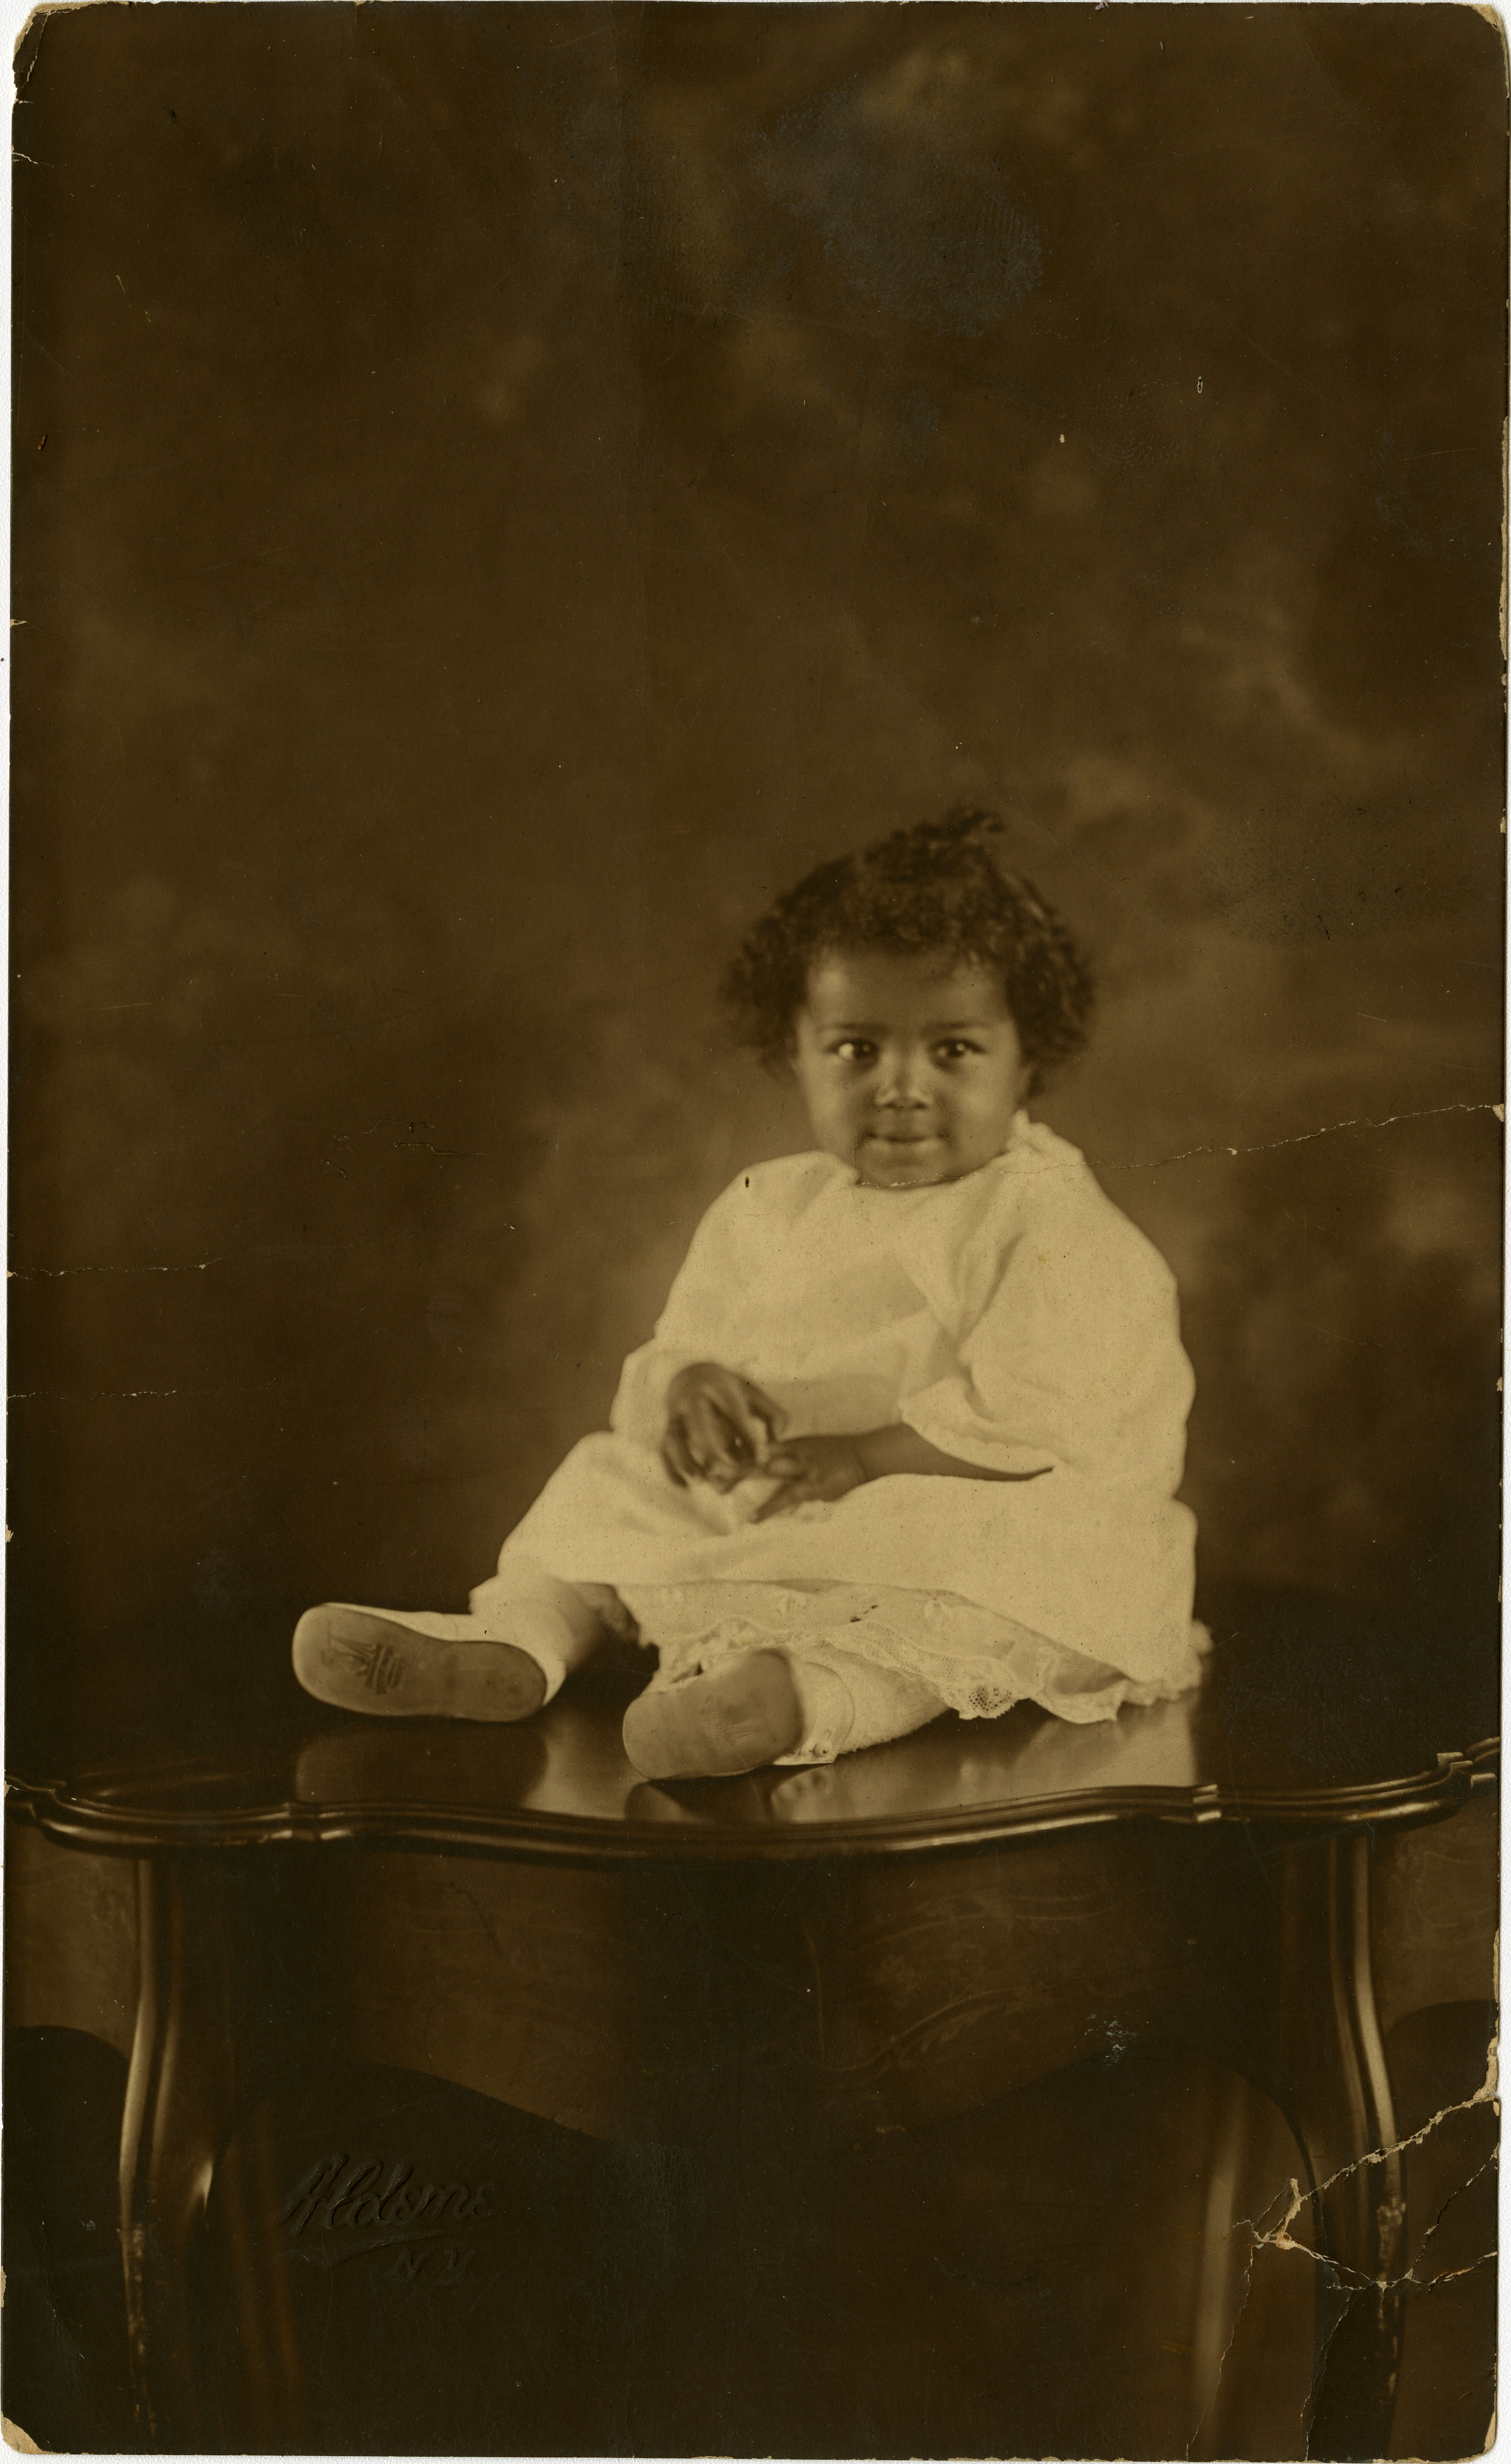 Formal portraint of infant sitting on table